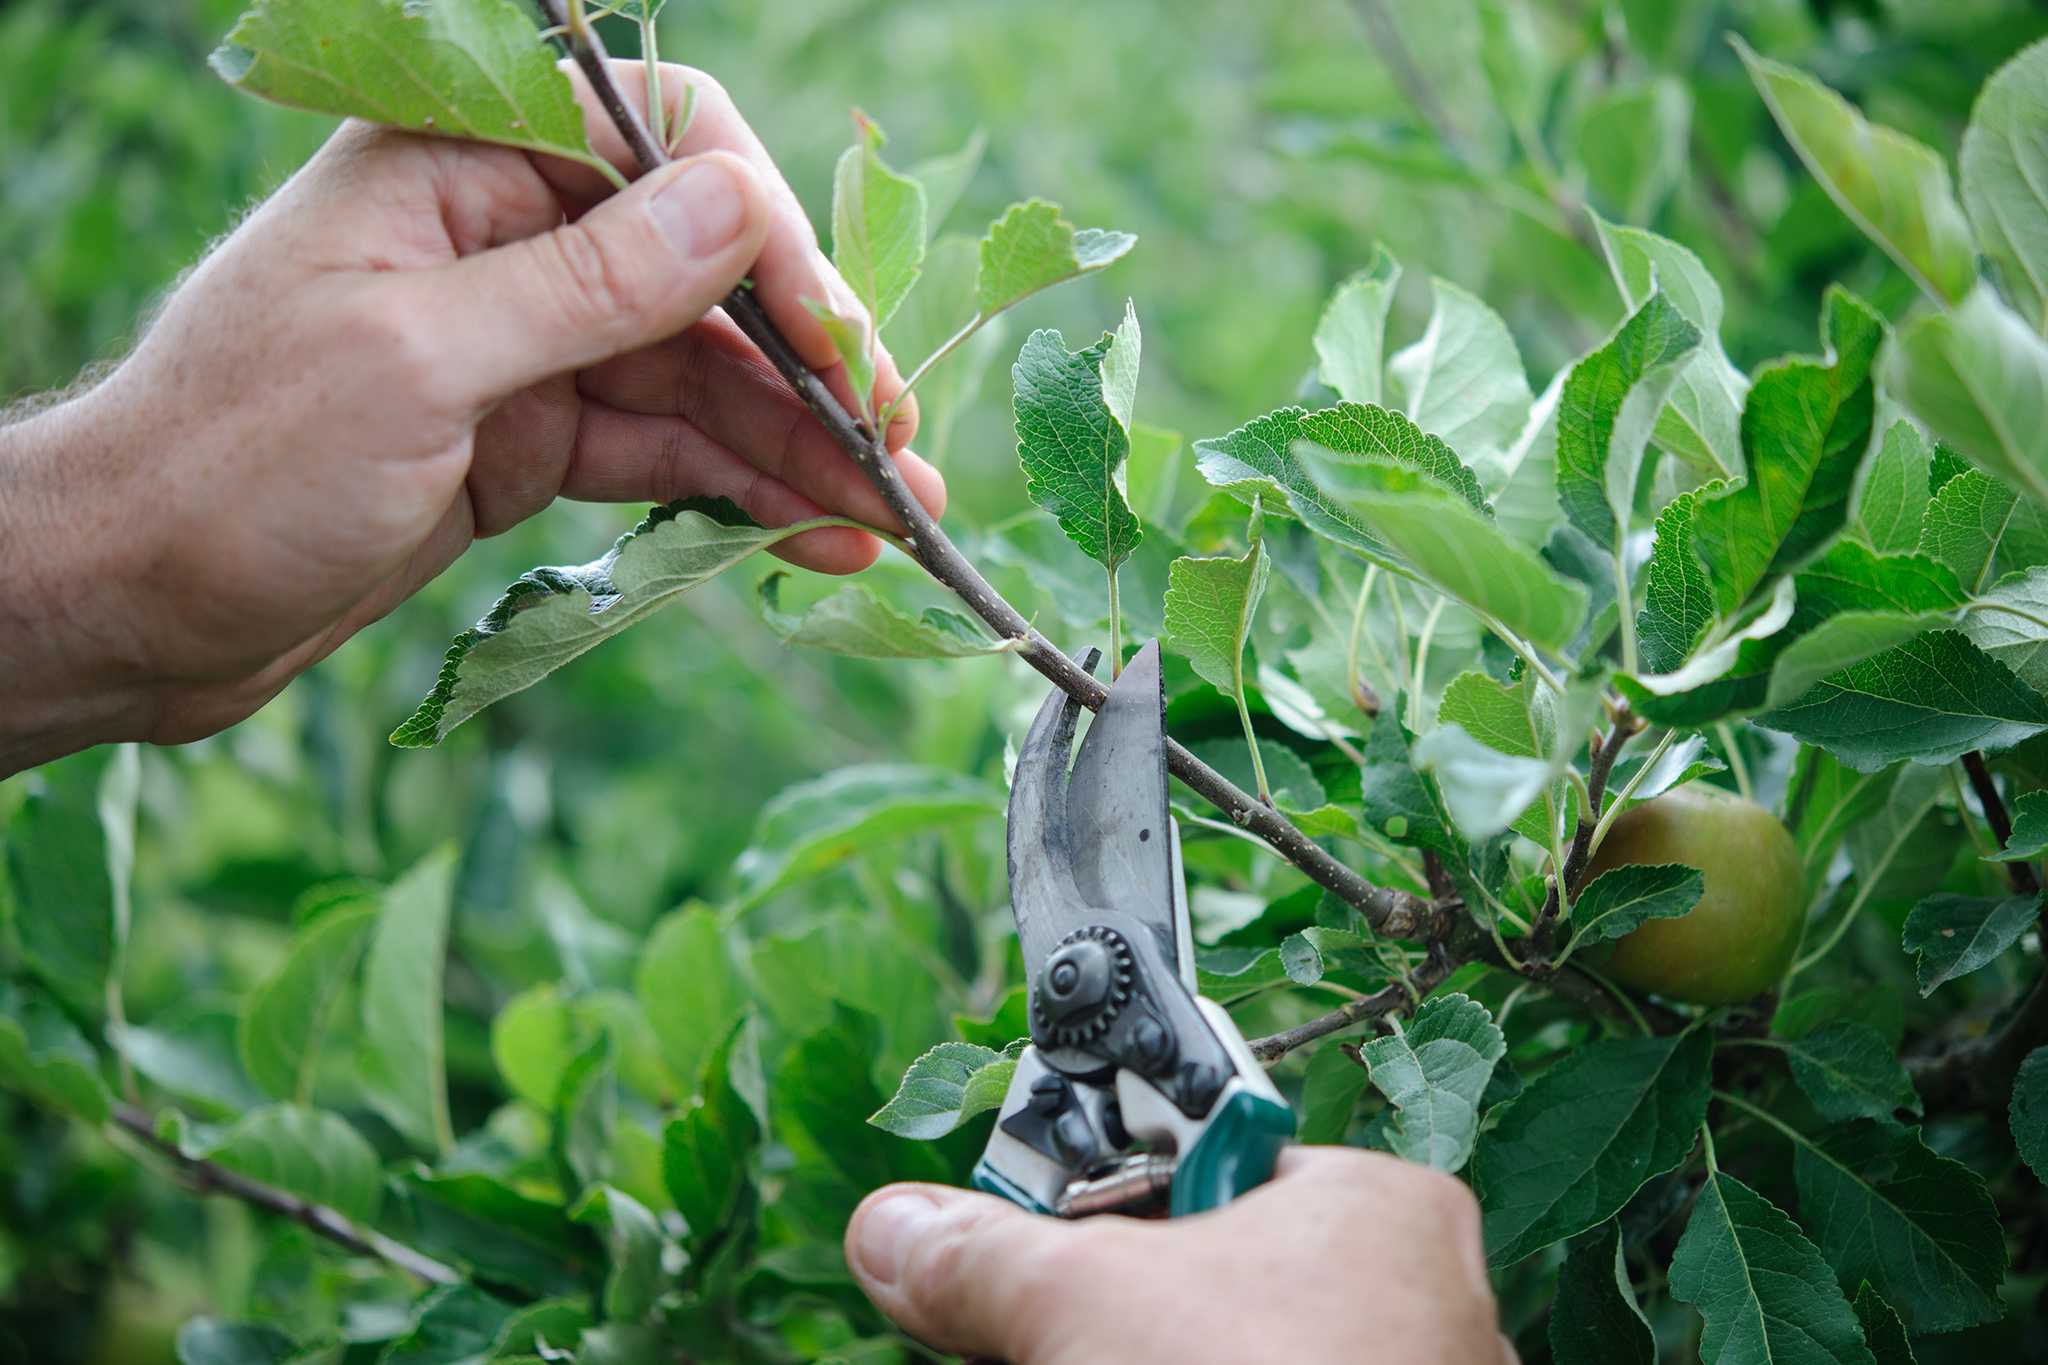 Pruning fruit trees in summer